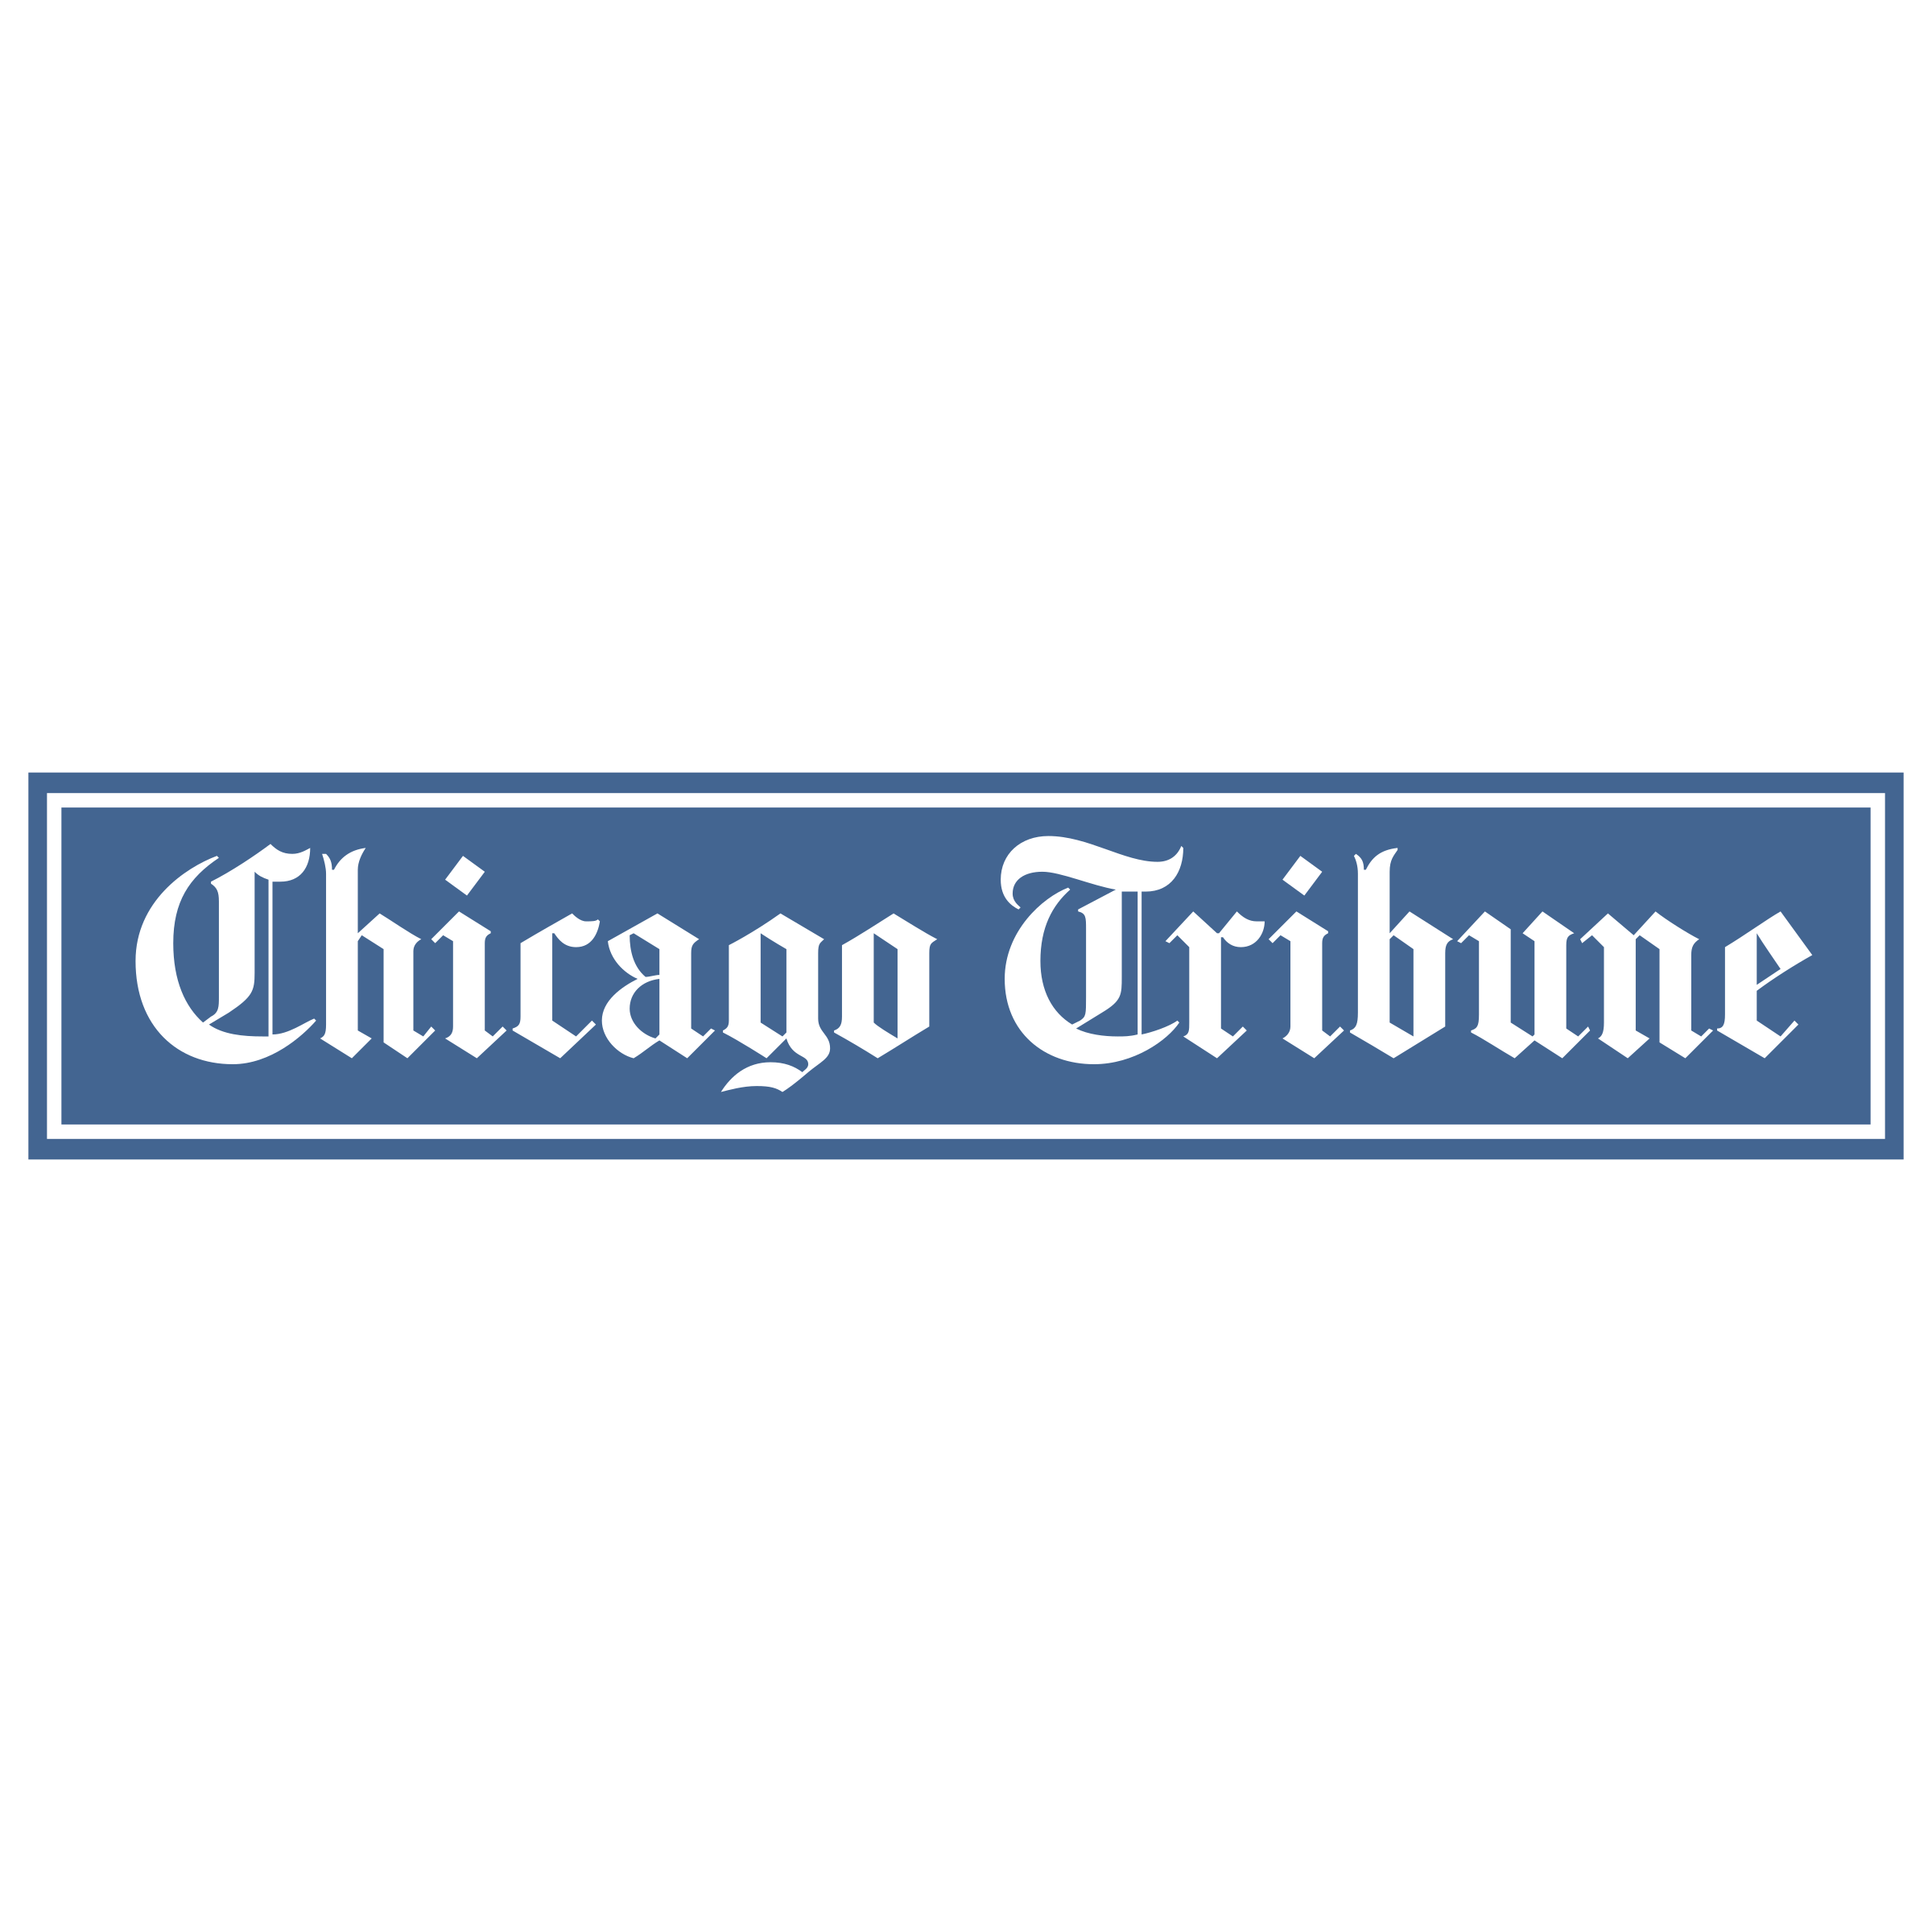 Transparent svg vector freebie. Chicago tribune logo png image library stock